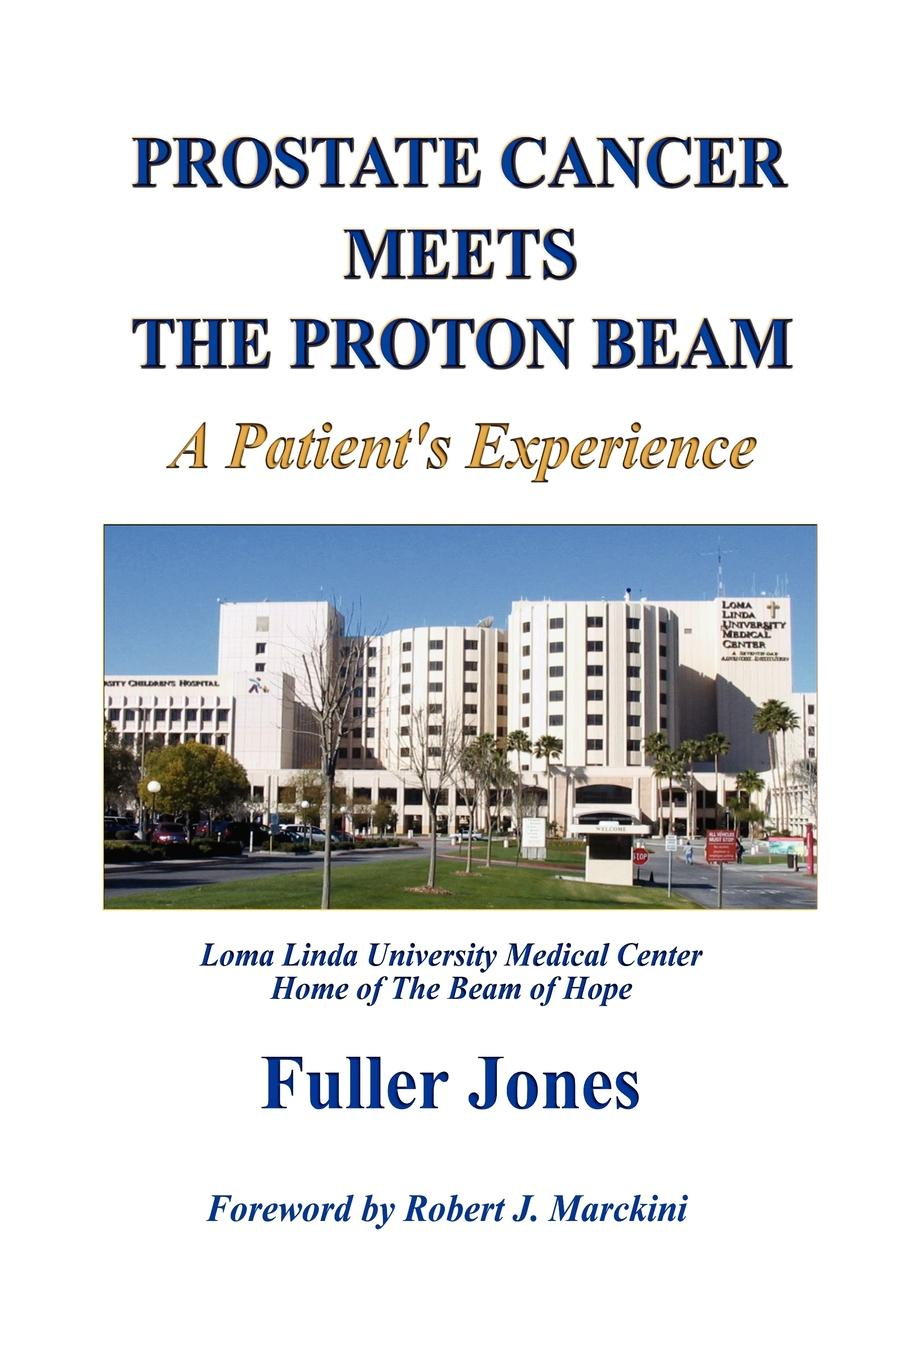 Fuller Jones Prostate Cancer Meets the Proton Beam eulitz jan simulation of the proton therapy gantry at the oncoray dresden